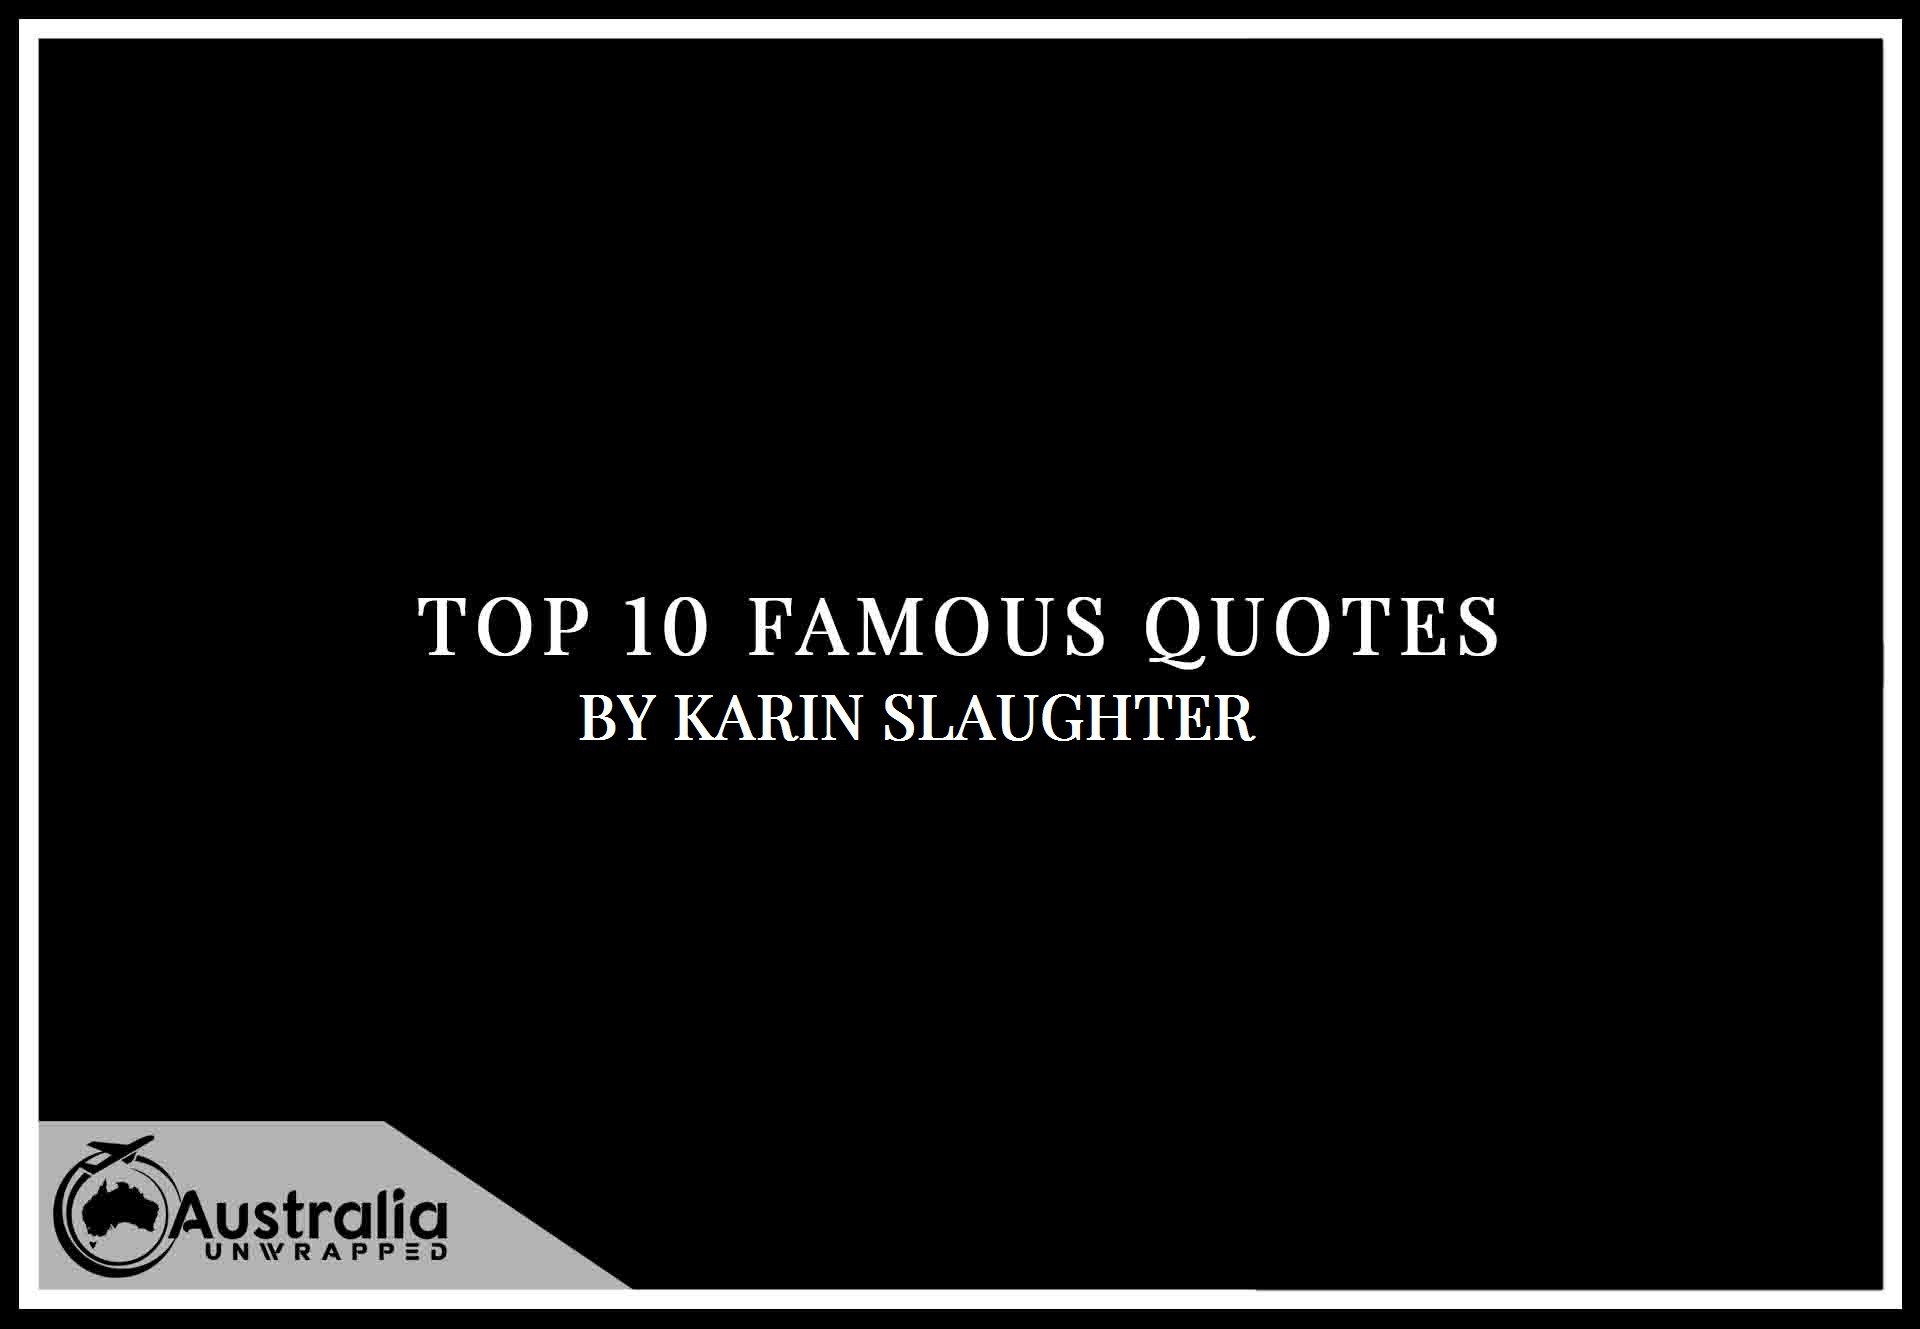 Karin Slaughter's Top 10 Popular and Famous Quotes